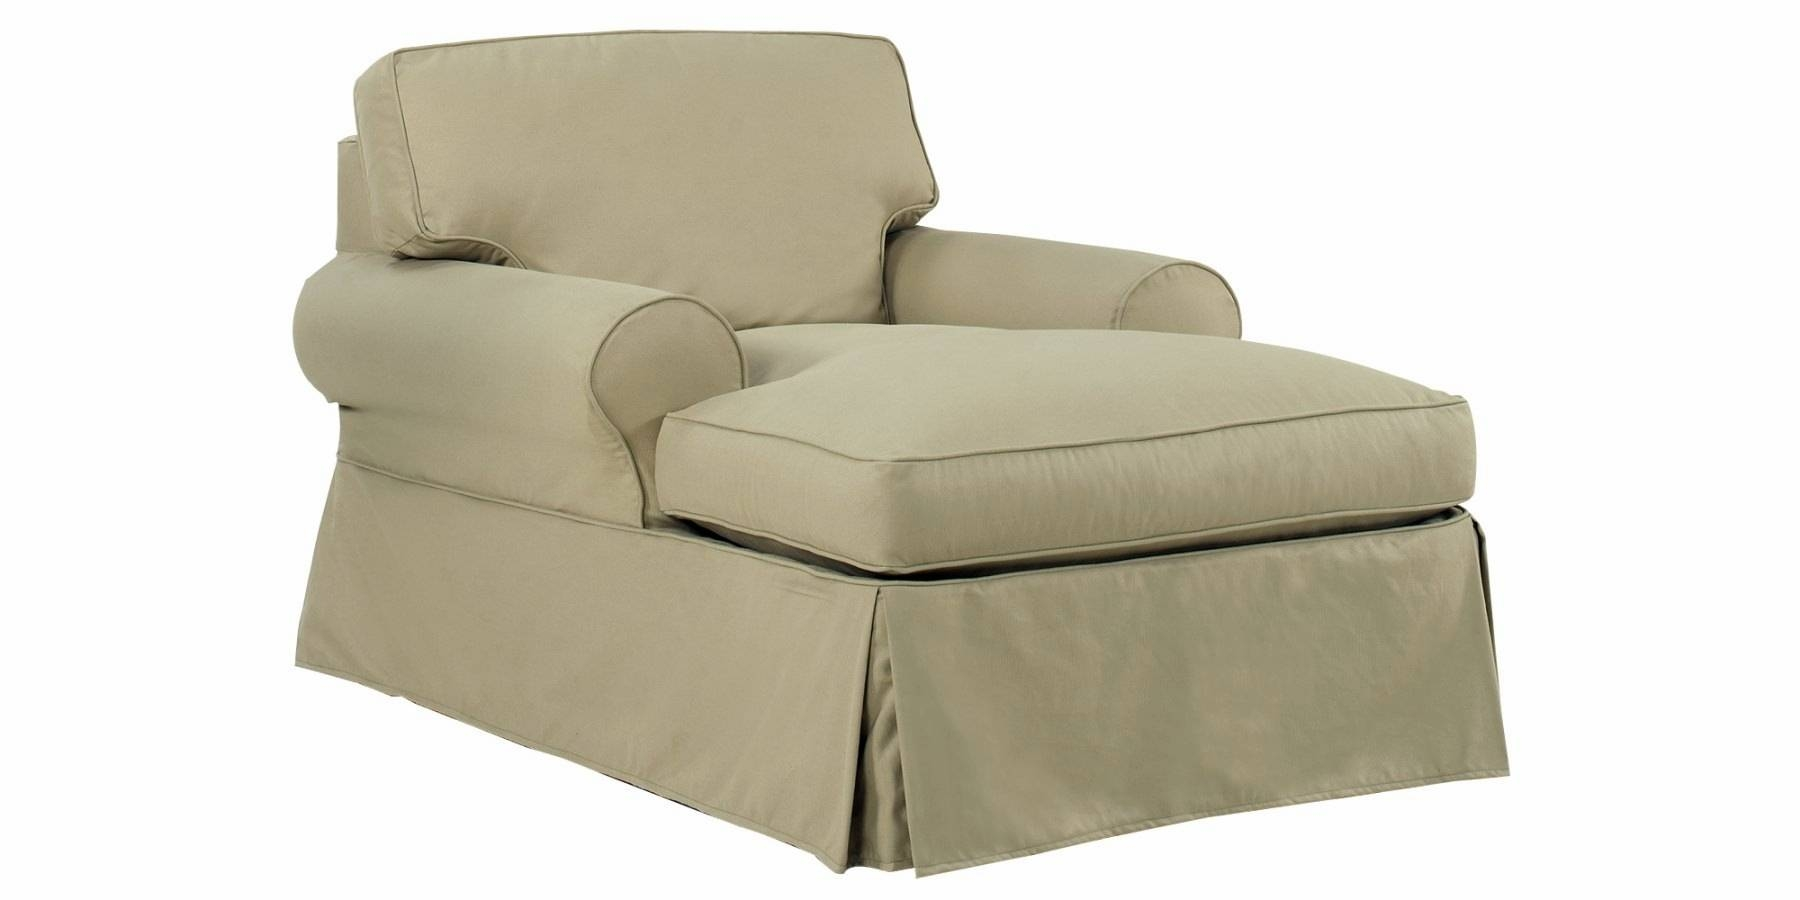 New Chaise Lounge Sofa Covers 79 With Additional Sofas And Couches with regard to Chaise Sofa Covers (Image 18 of 30)